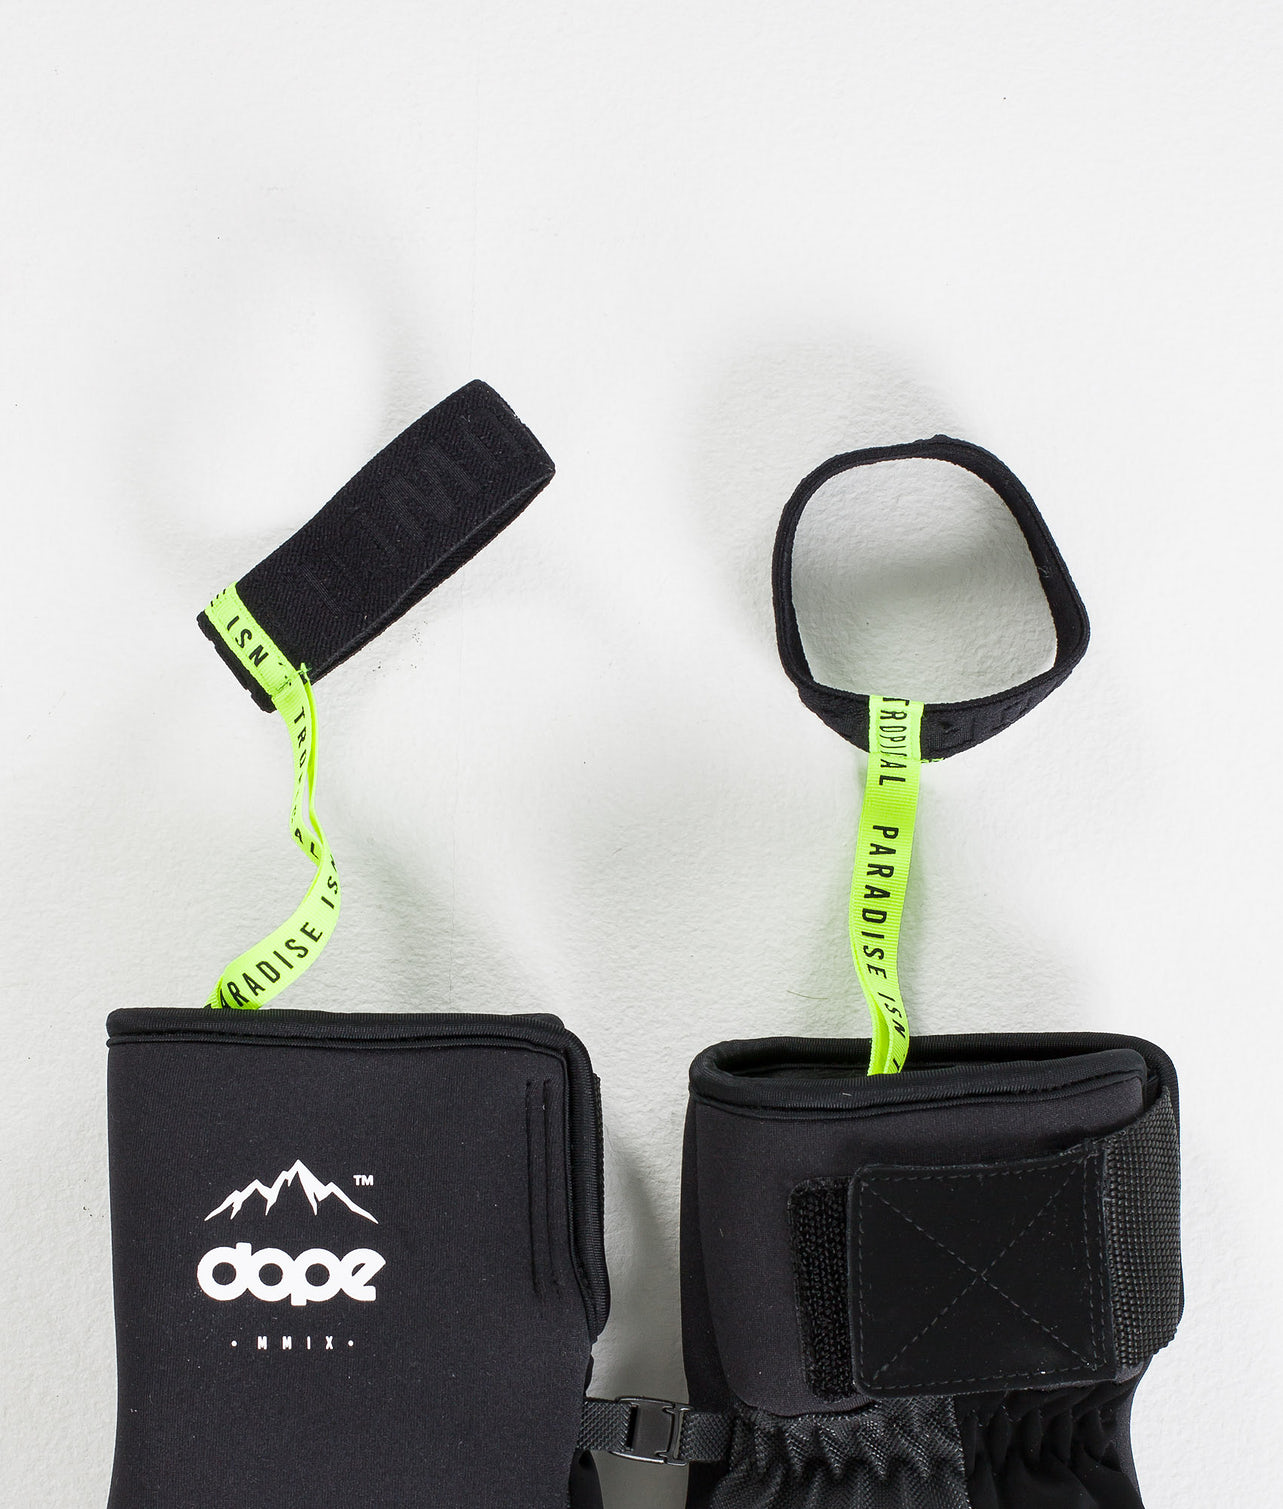 Buy Ace Mitt Ski Gloves from Dope at Ridestore.com - Always free shipping, free returns and 30 days money back guarantee